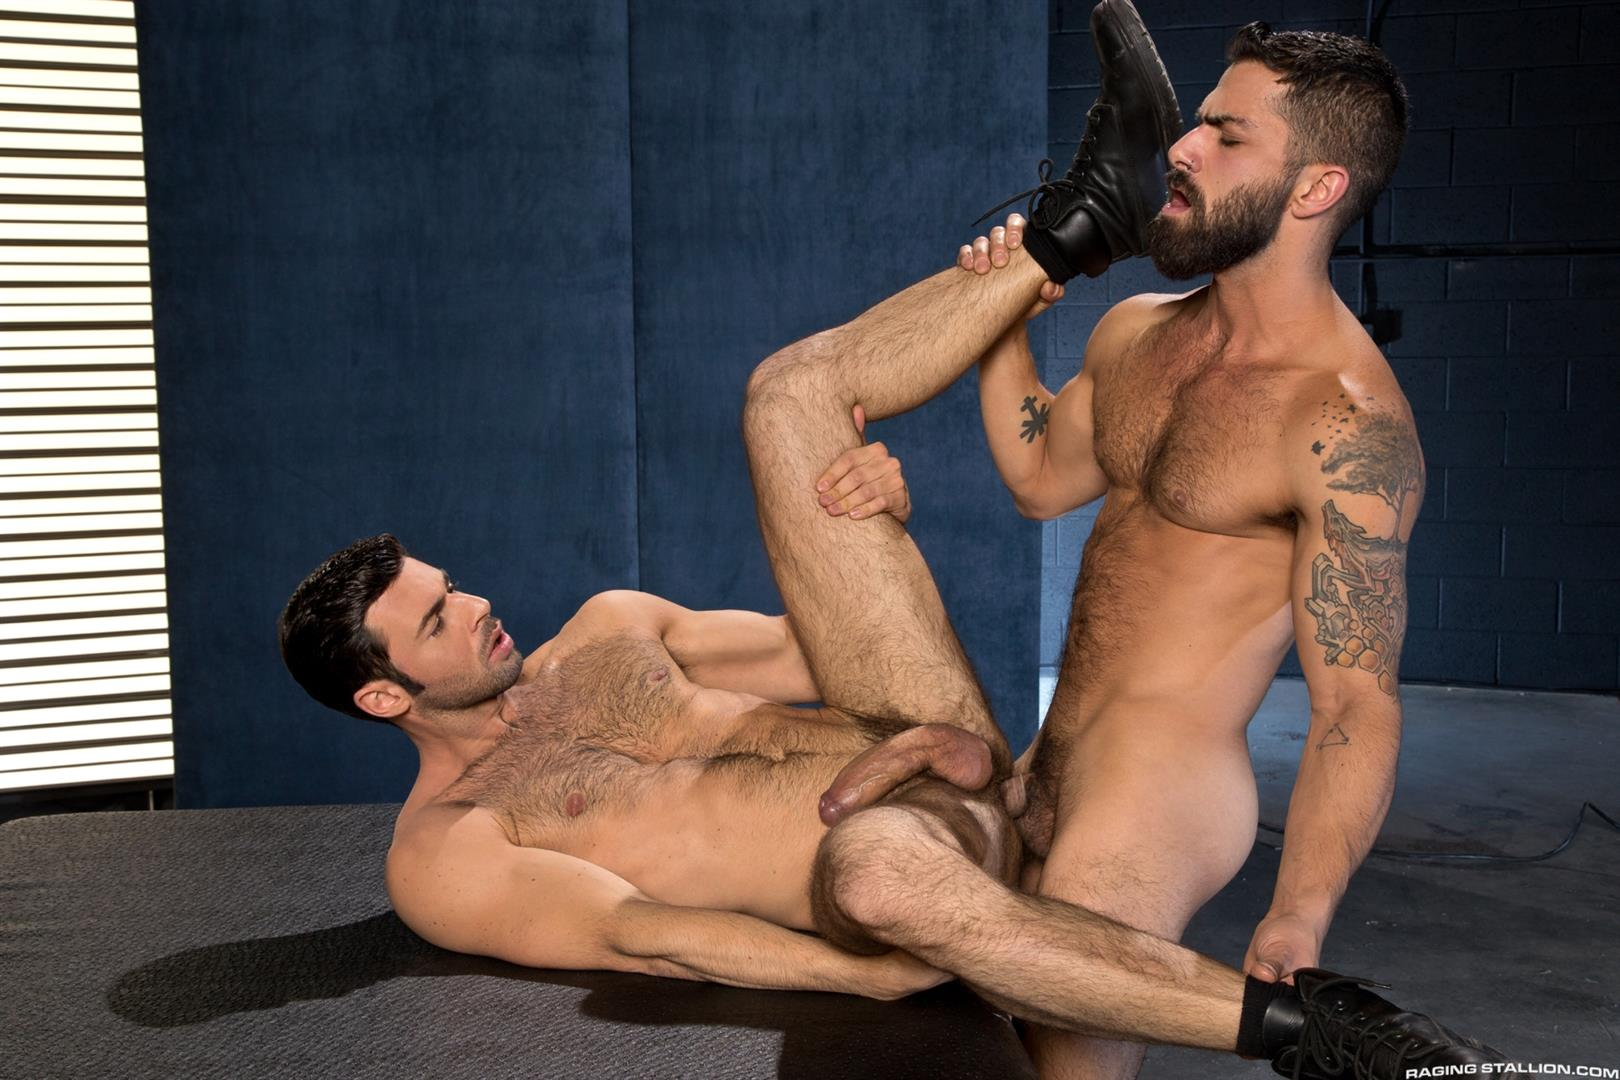 Raging Stallion Adam Ramzi and Dario Beck Hairy Ass And A Big Uncut Cock Amateur Gay Porn 14 Fucking A Hairy Ass Muscle Jock Ass With A Big Uncut Cock